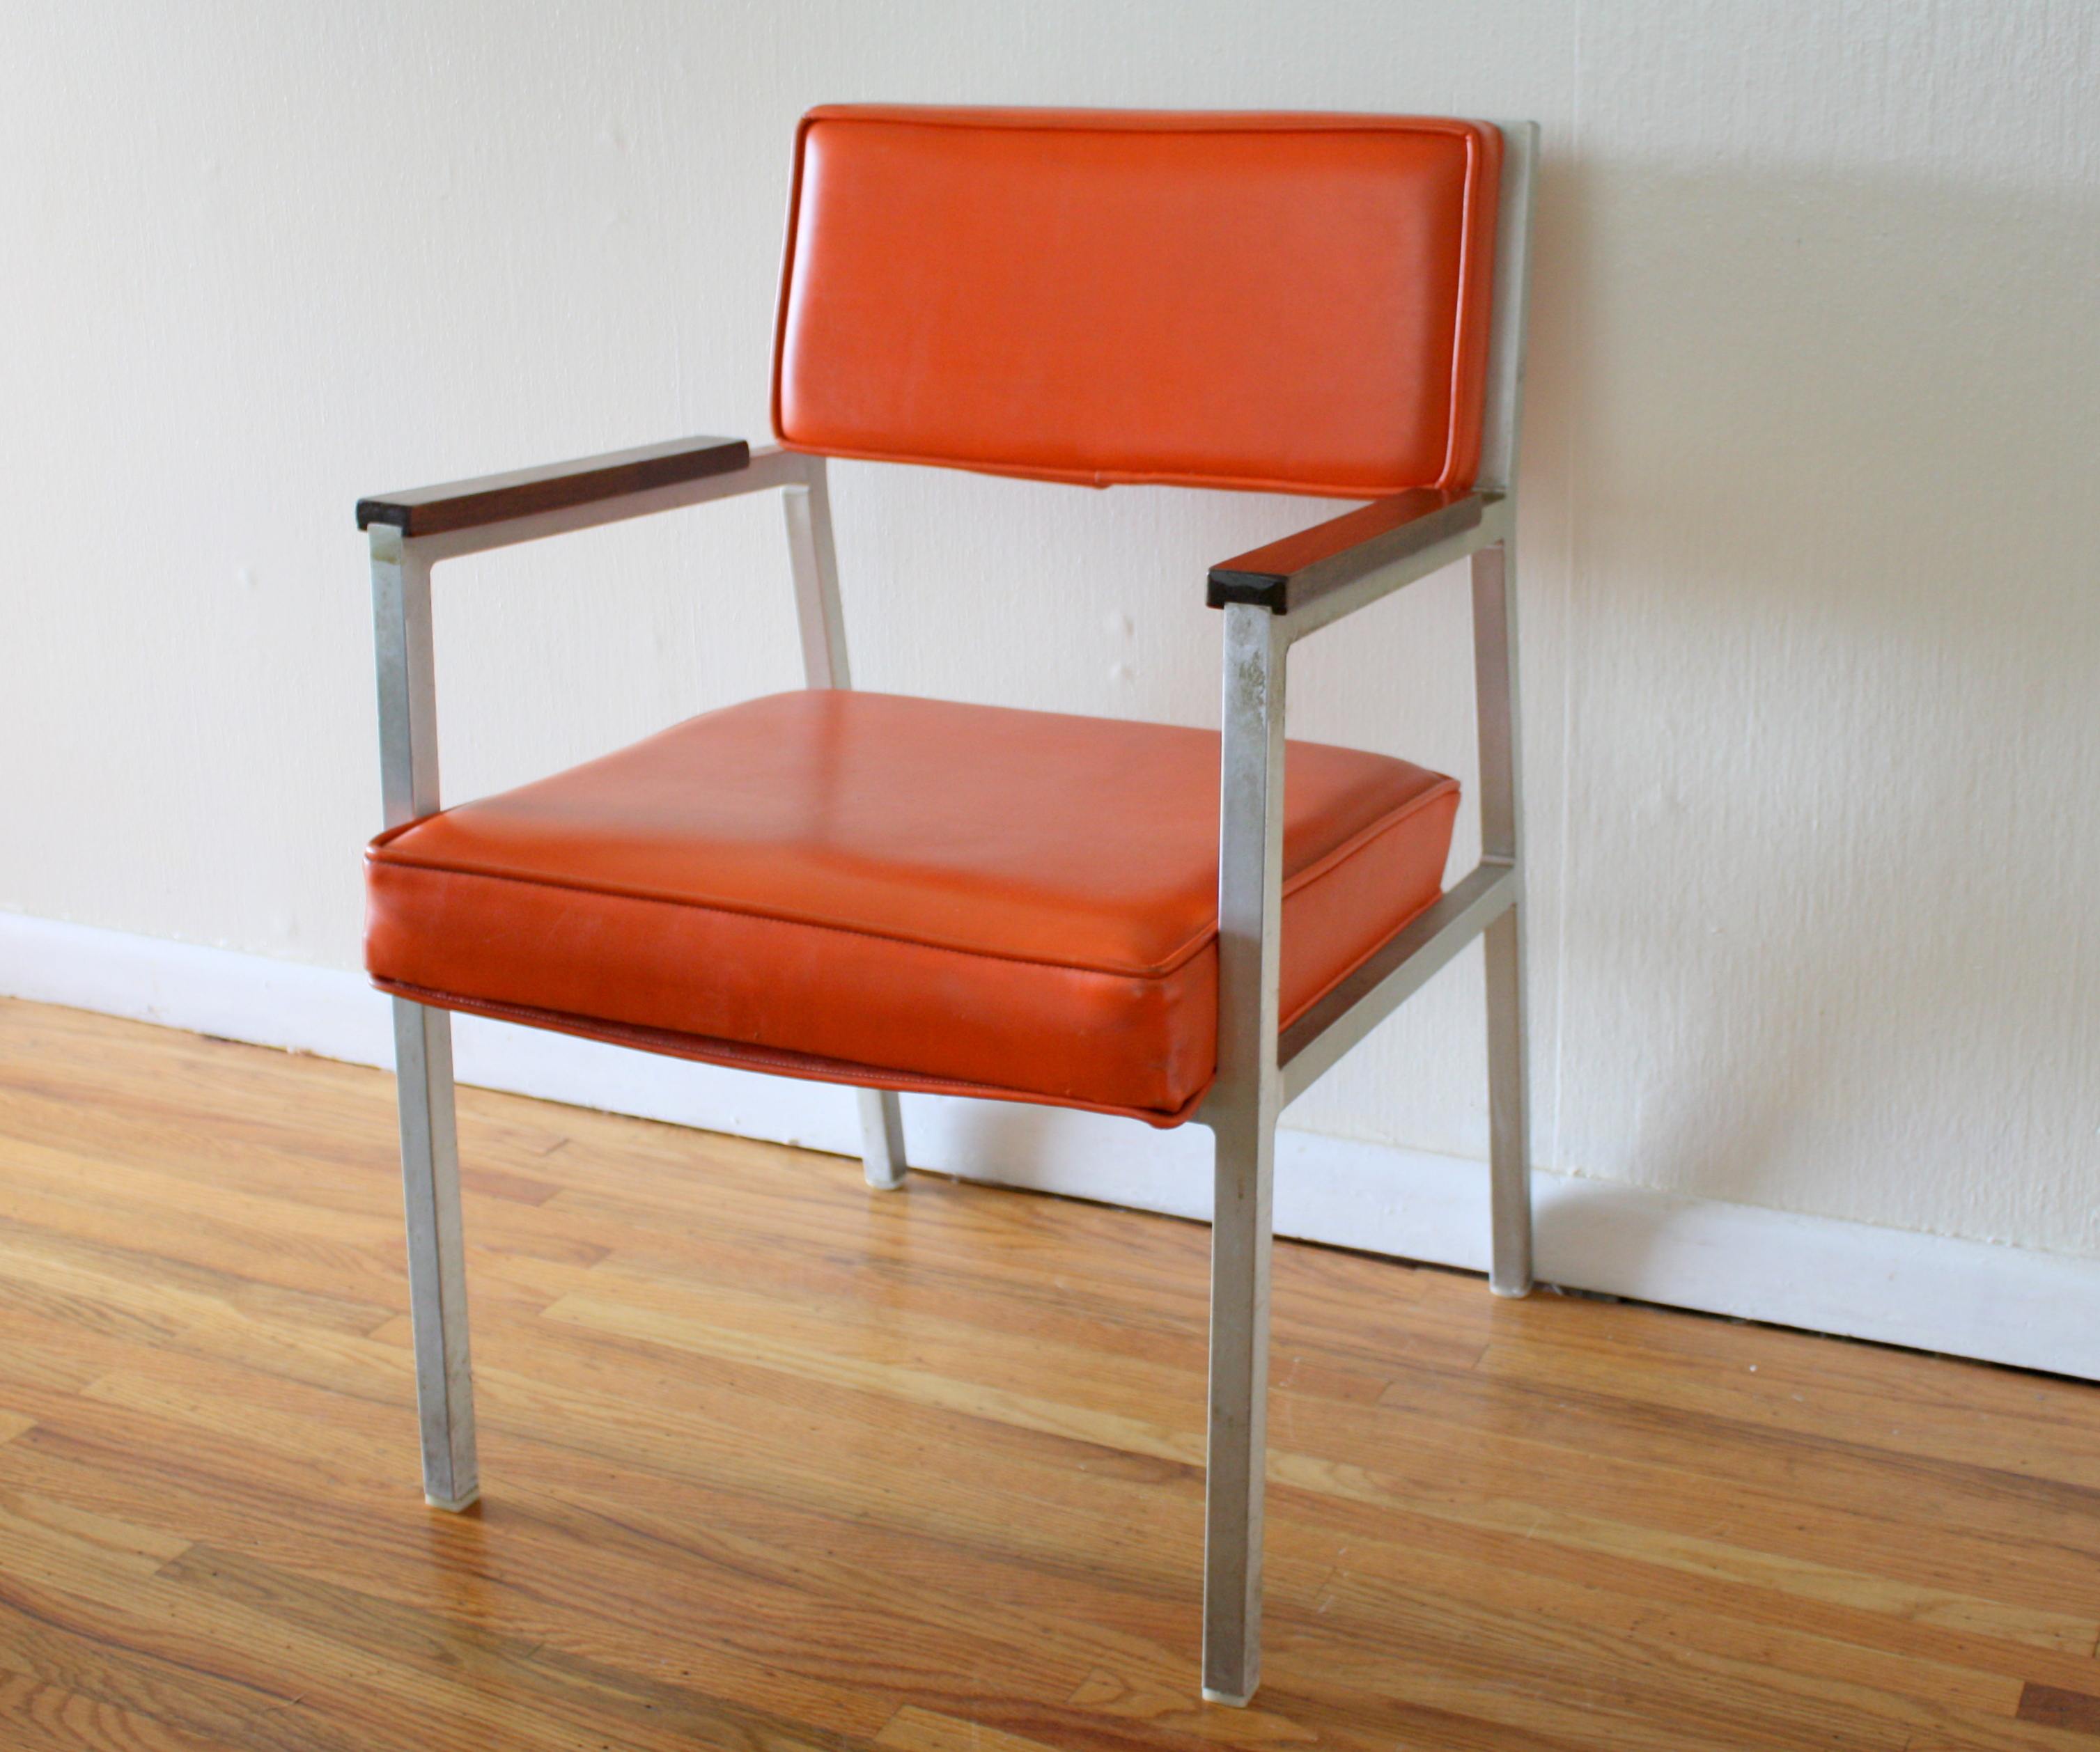 Mcm Orange Steelcase Chair 1